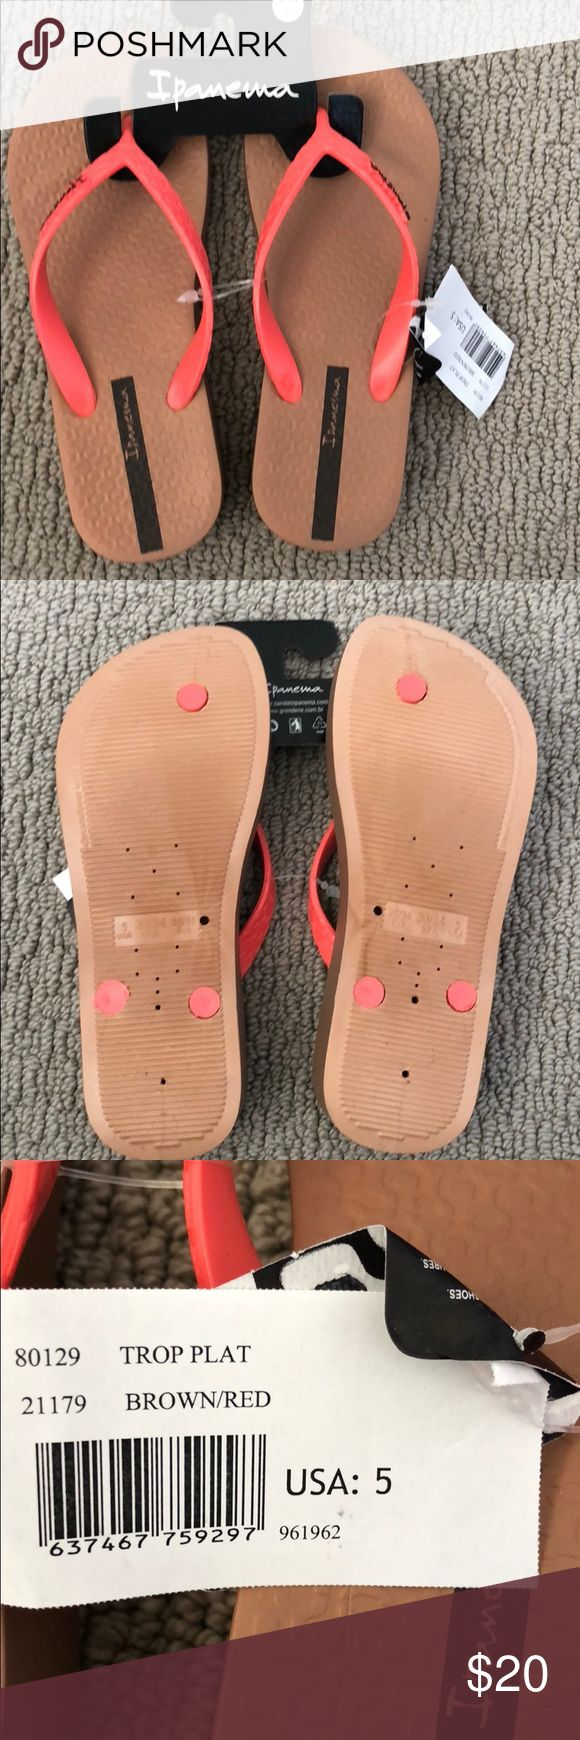 women's Ipanema brown/orange flip-flops size 5 Brand new women's Ipanema brown/orange flip-flops size 5 Has an approximately 1 inch soul Brand new with tags Ipanema Shoes Sandals